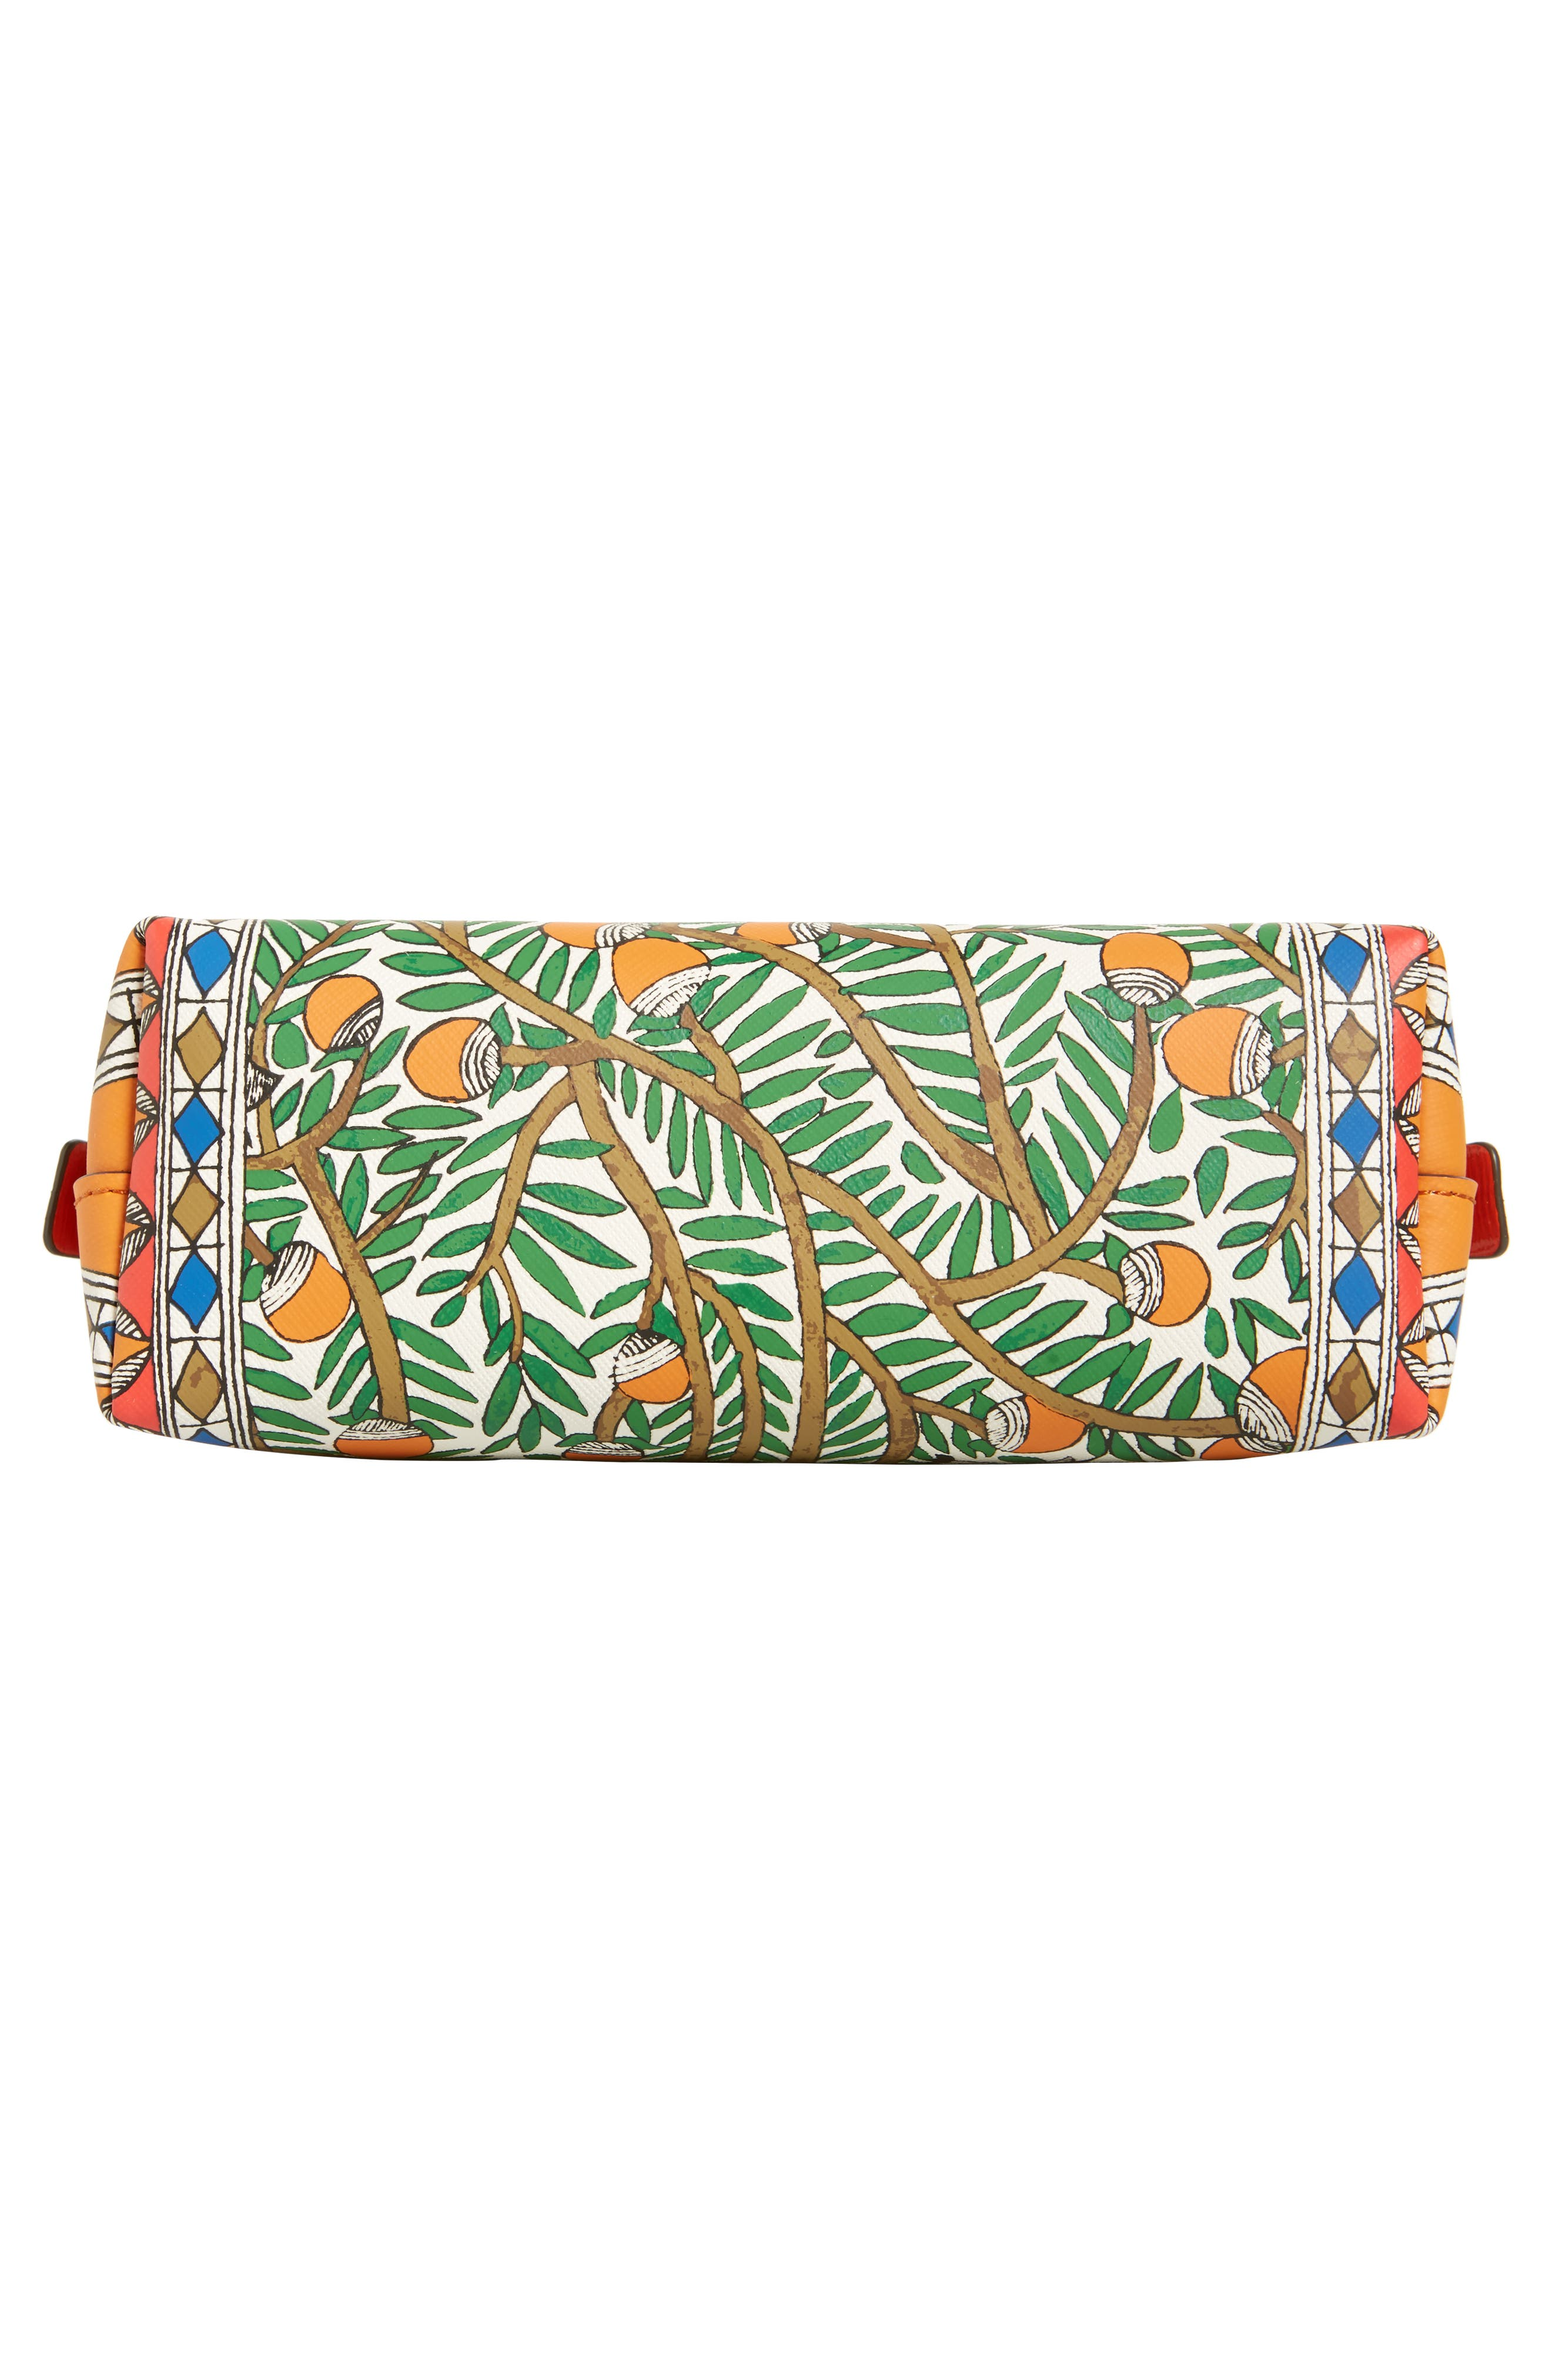 TORY BURCH,                             Small Robinson Cosmetic Case,                             Alternate thumbnail 5, color,                             SOMETHING WILD